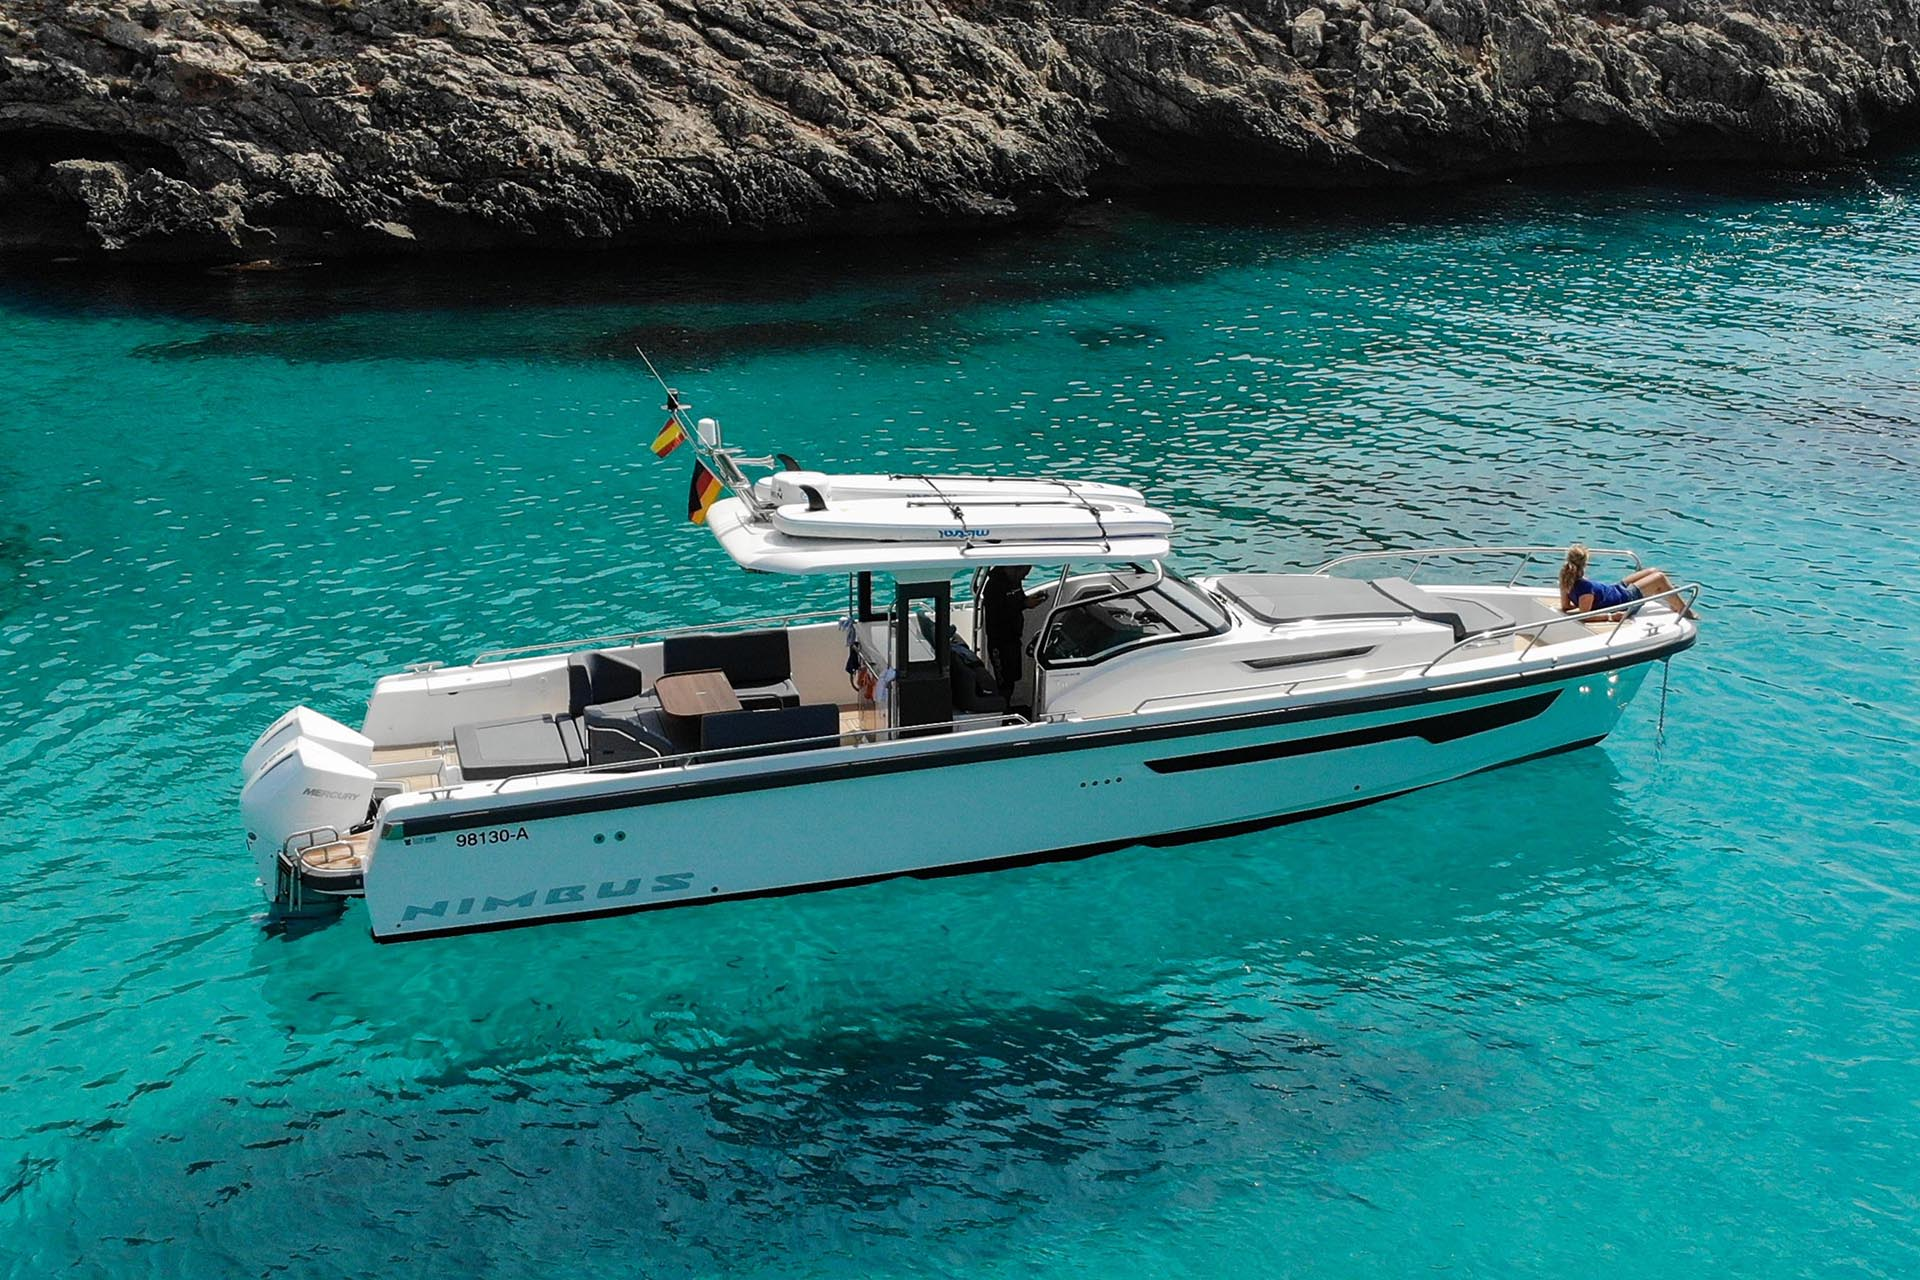 Nimbus T11 Tender on water